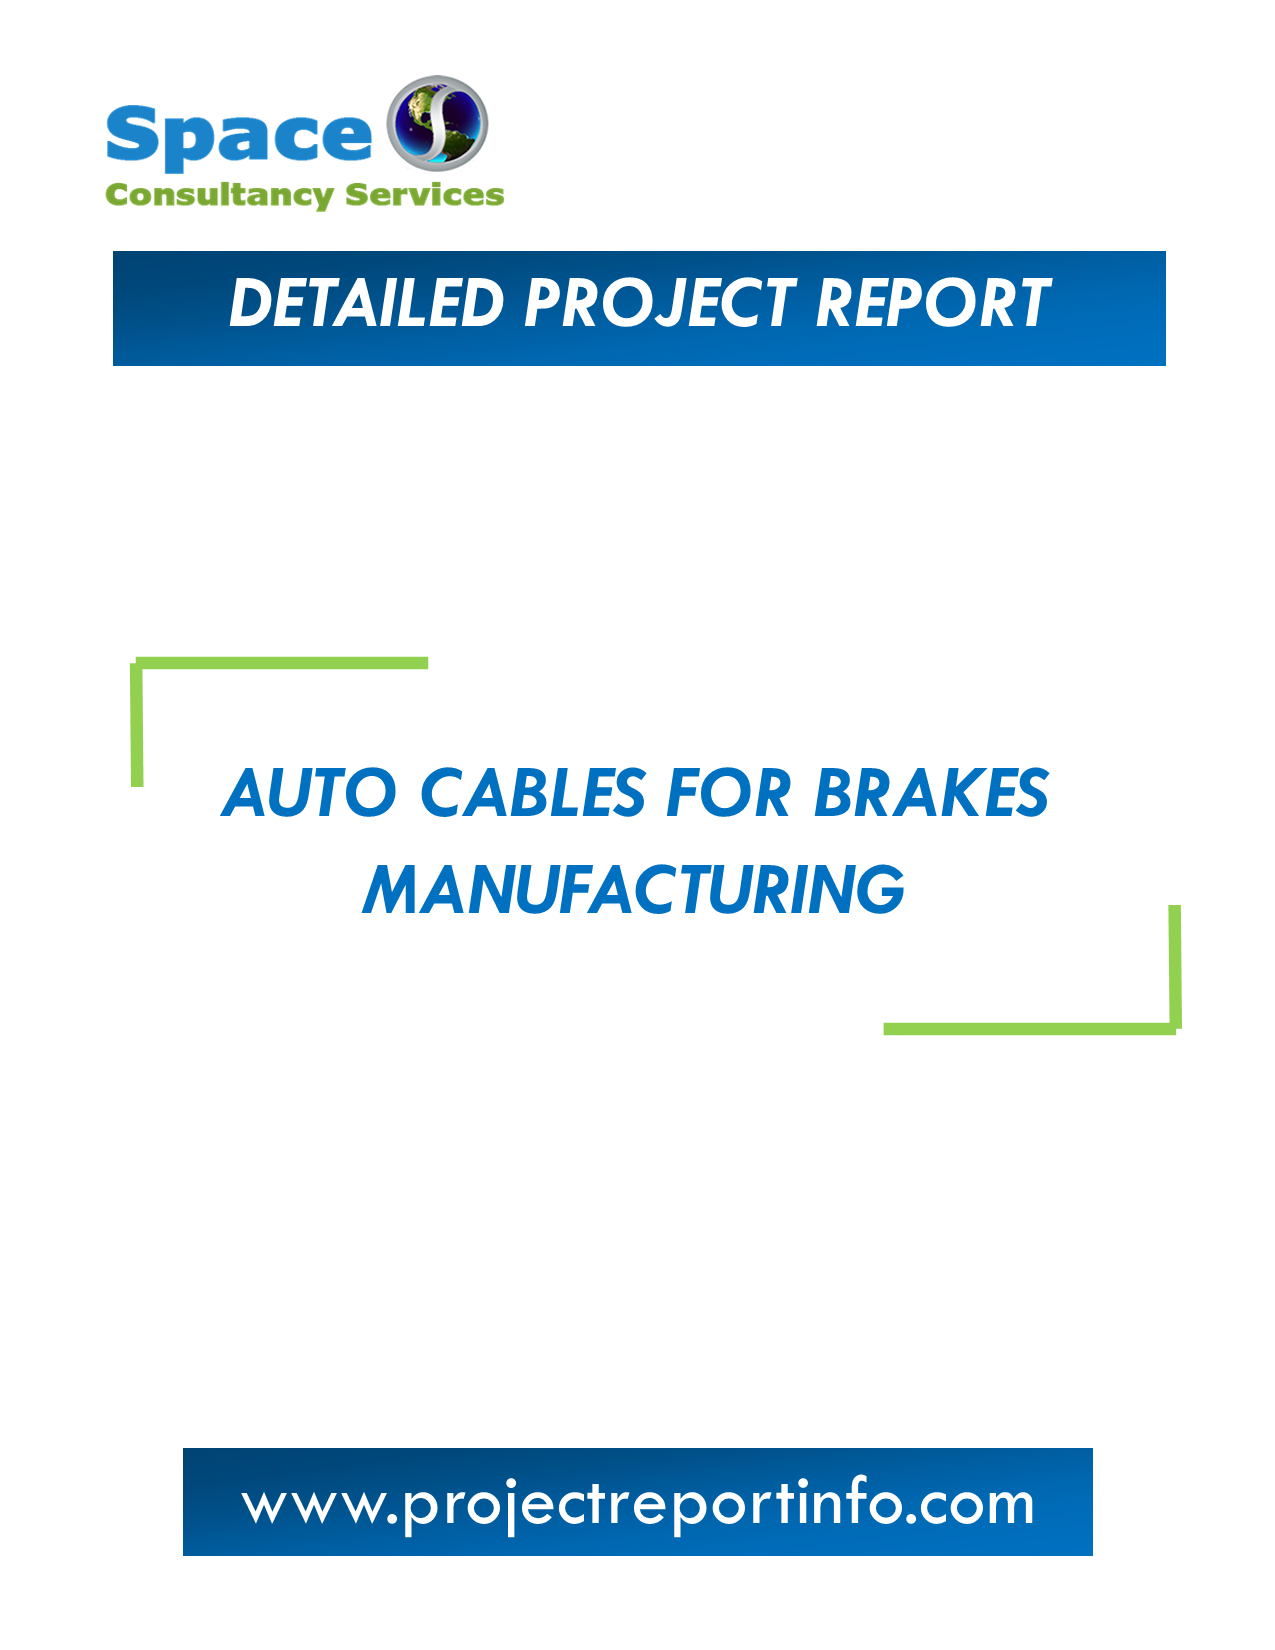 Auto Cables for Brakes Manufacturing Project Report